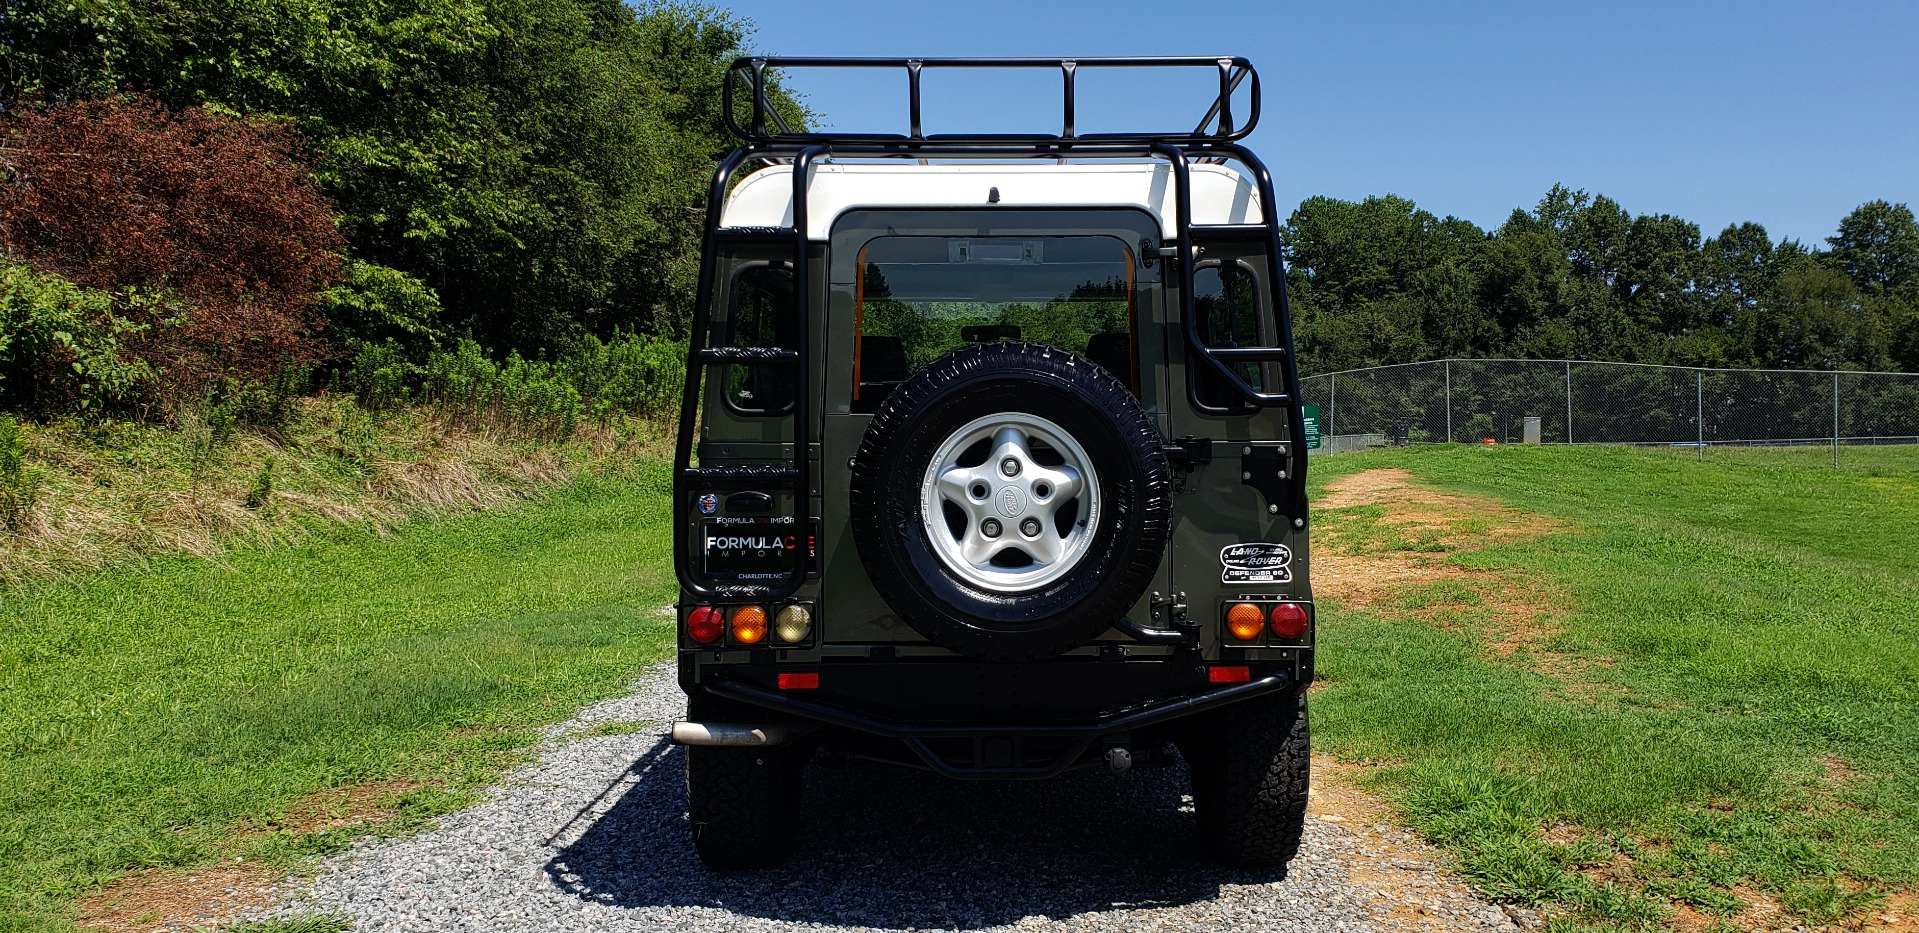 Used 1997 Land Rover DEFENDER 90 LIMITED EDITION / HARD-TOP / 4WD / FULLY RESTORED / LOW MILES for sale $119,000 at Formula Imports in Charlotte NC 28227 32